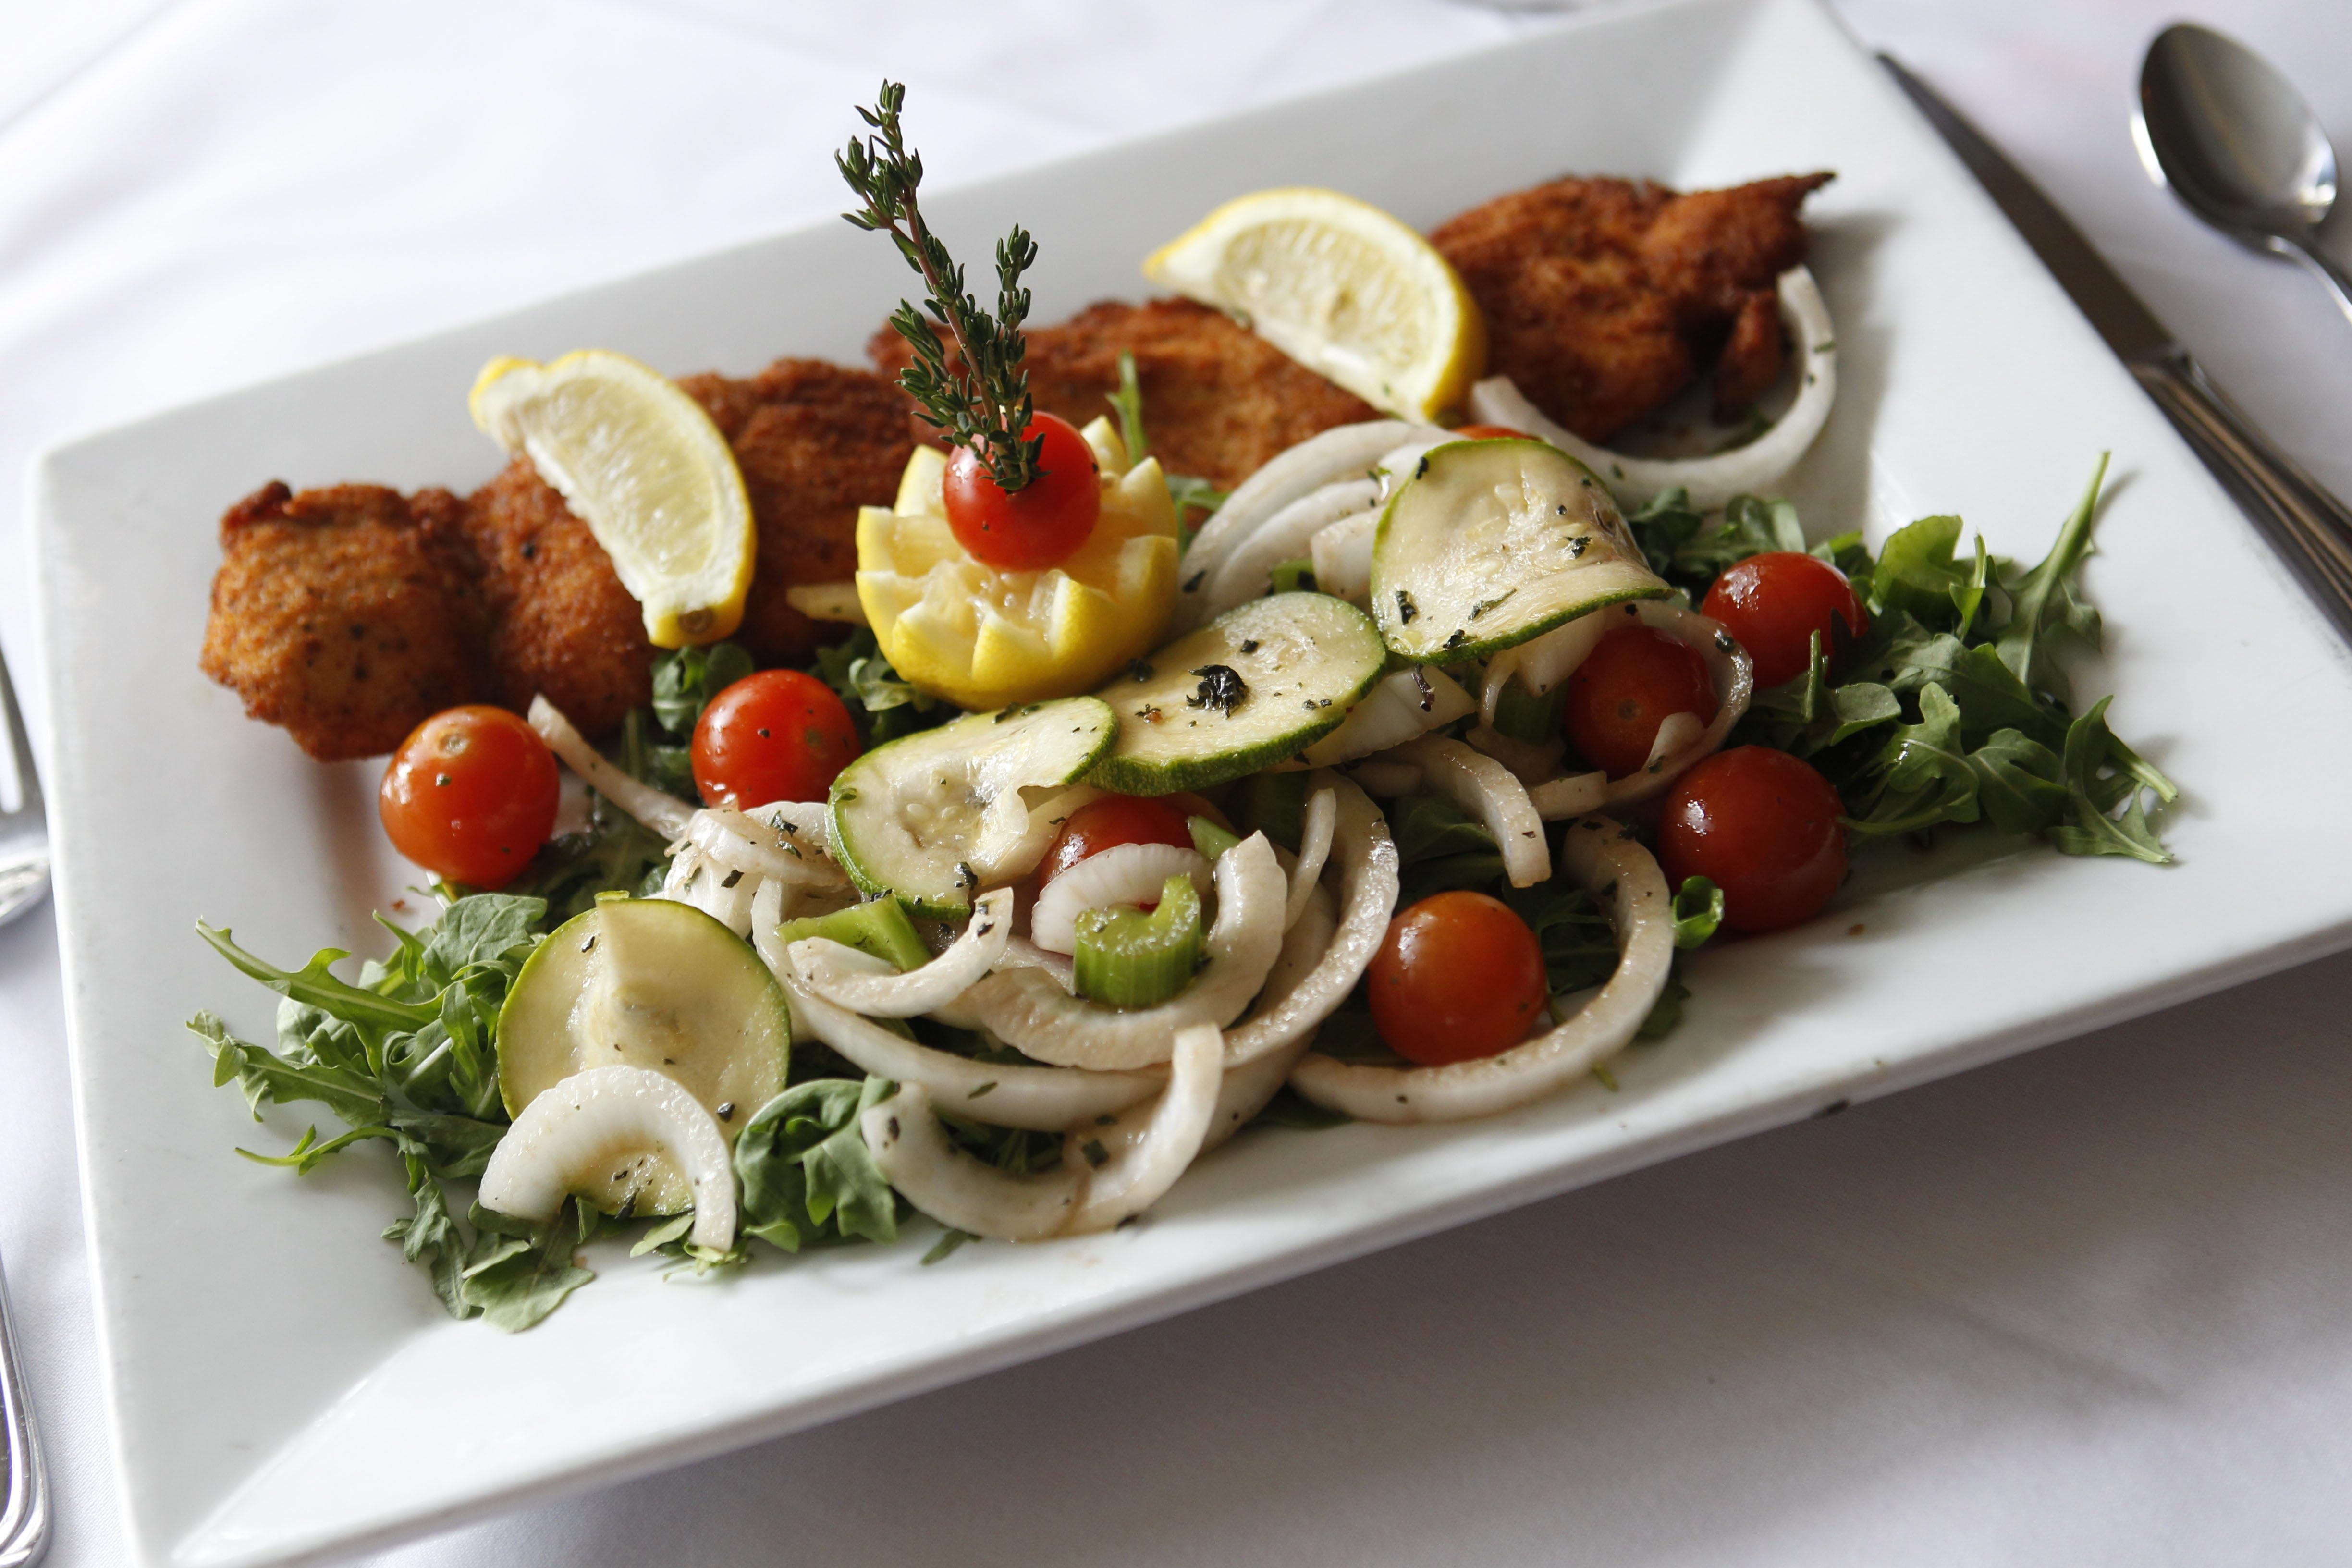 Breaded chicken cutlet with arugula, julienne Spanish onion, celery, cucumbers and cherry tomato with balsamic olive oil vinaigrette.